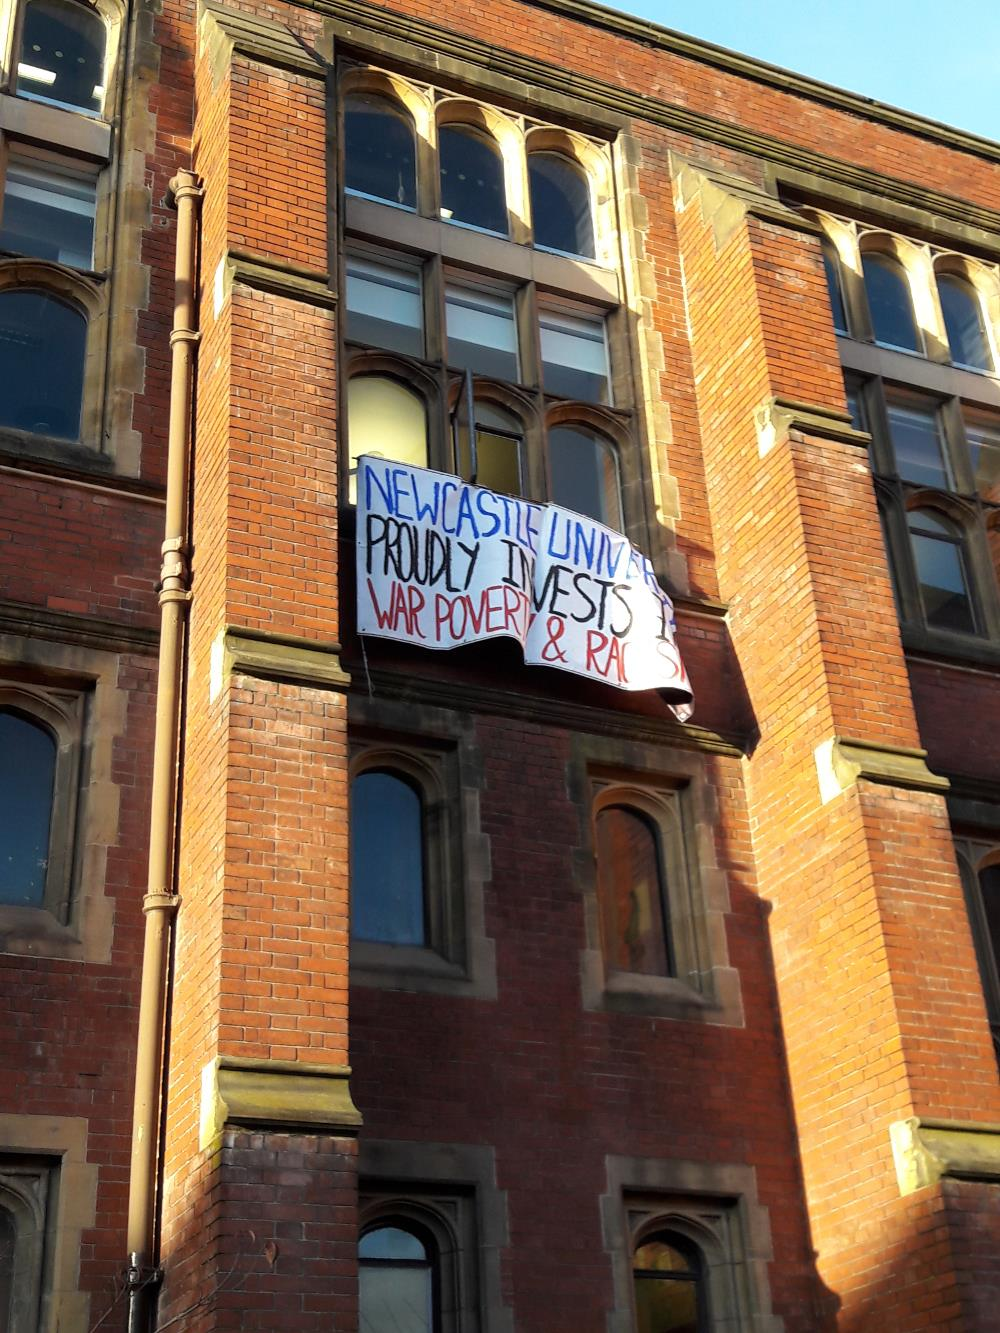 Banner unveiled on red brick building at Newcastle University